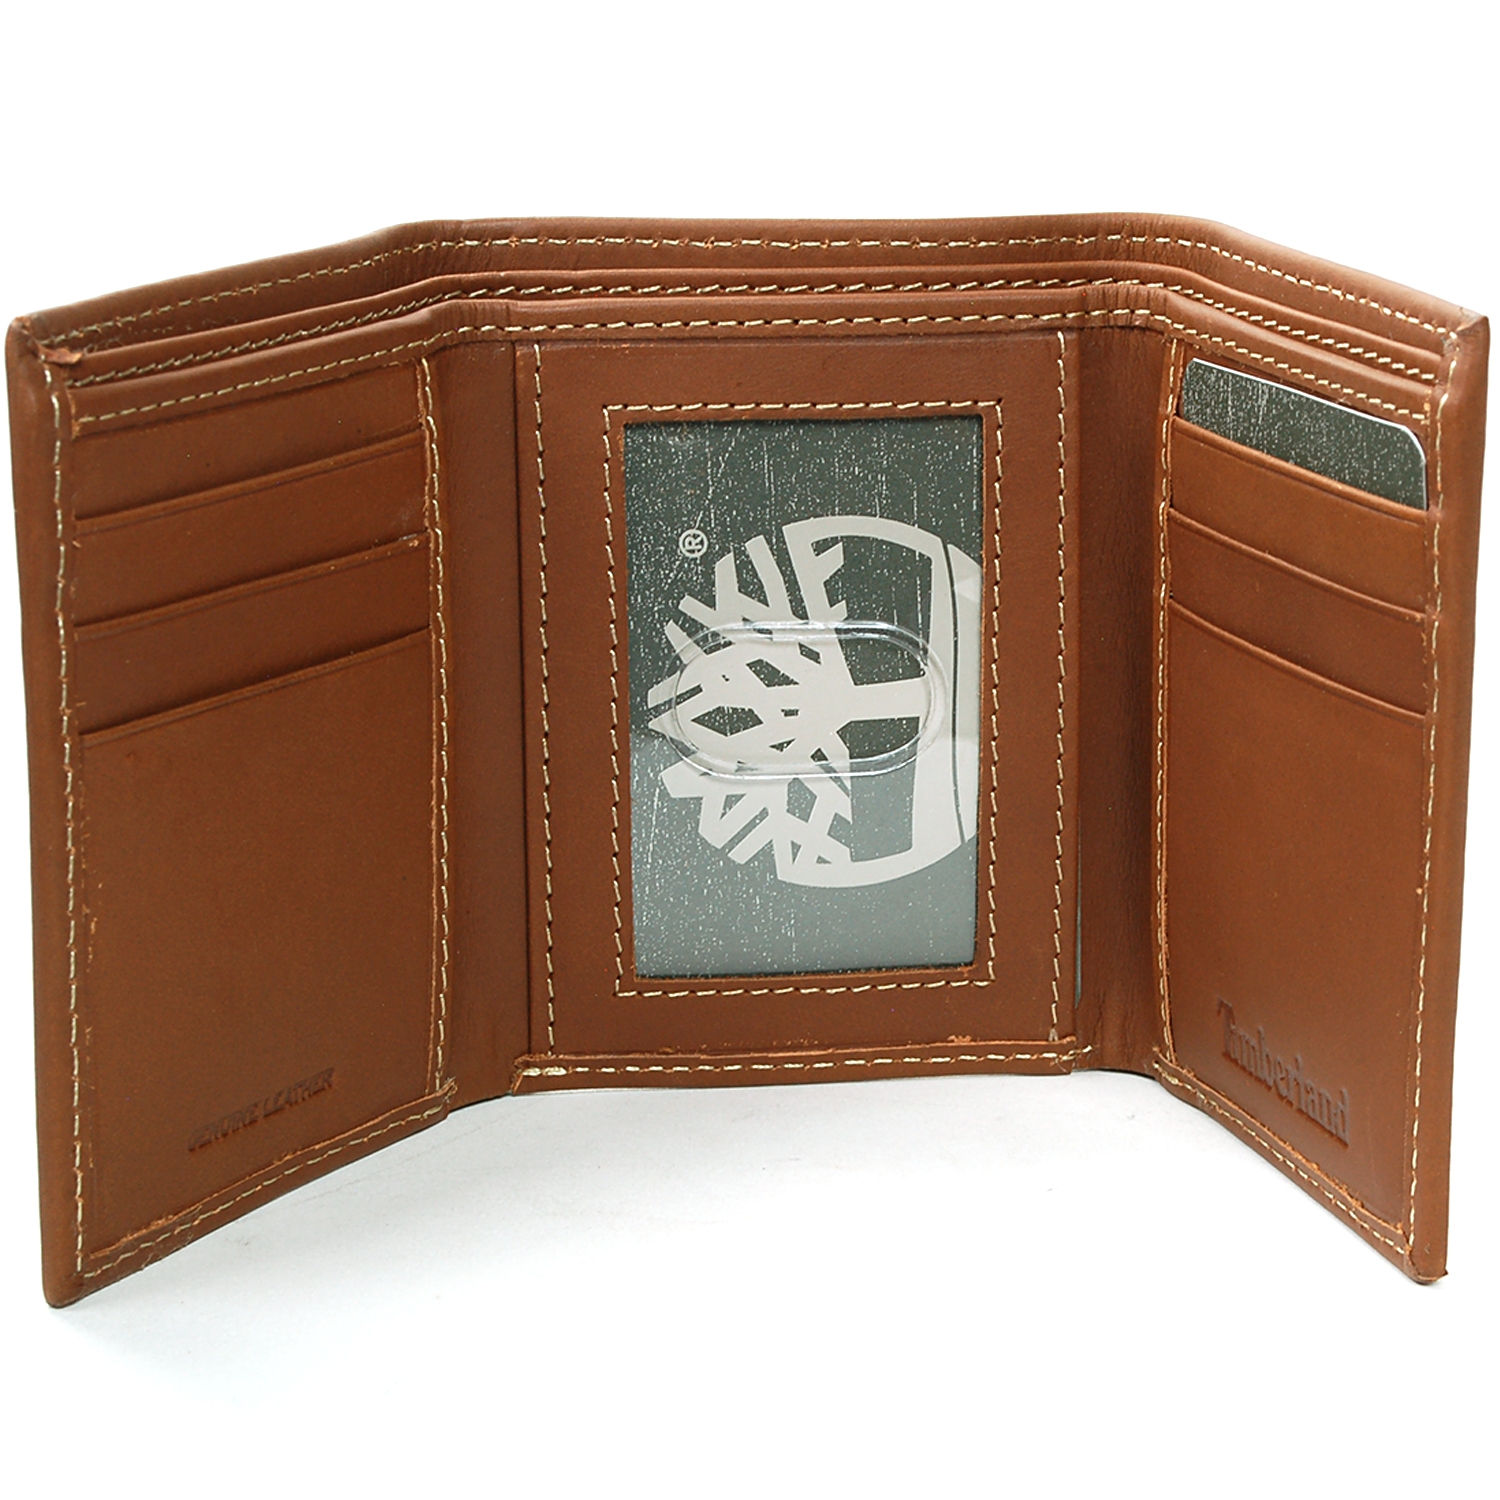 a67231a65b893 Timberland Men s Trifold Wallet Soft Genuine Leather Slim Billfold ...